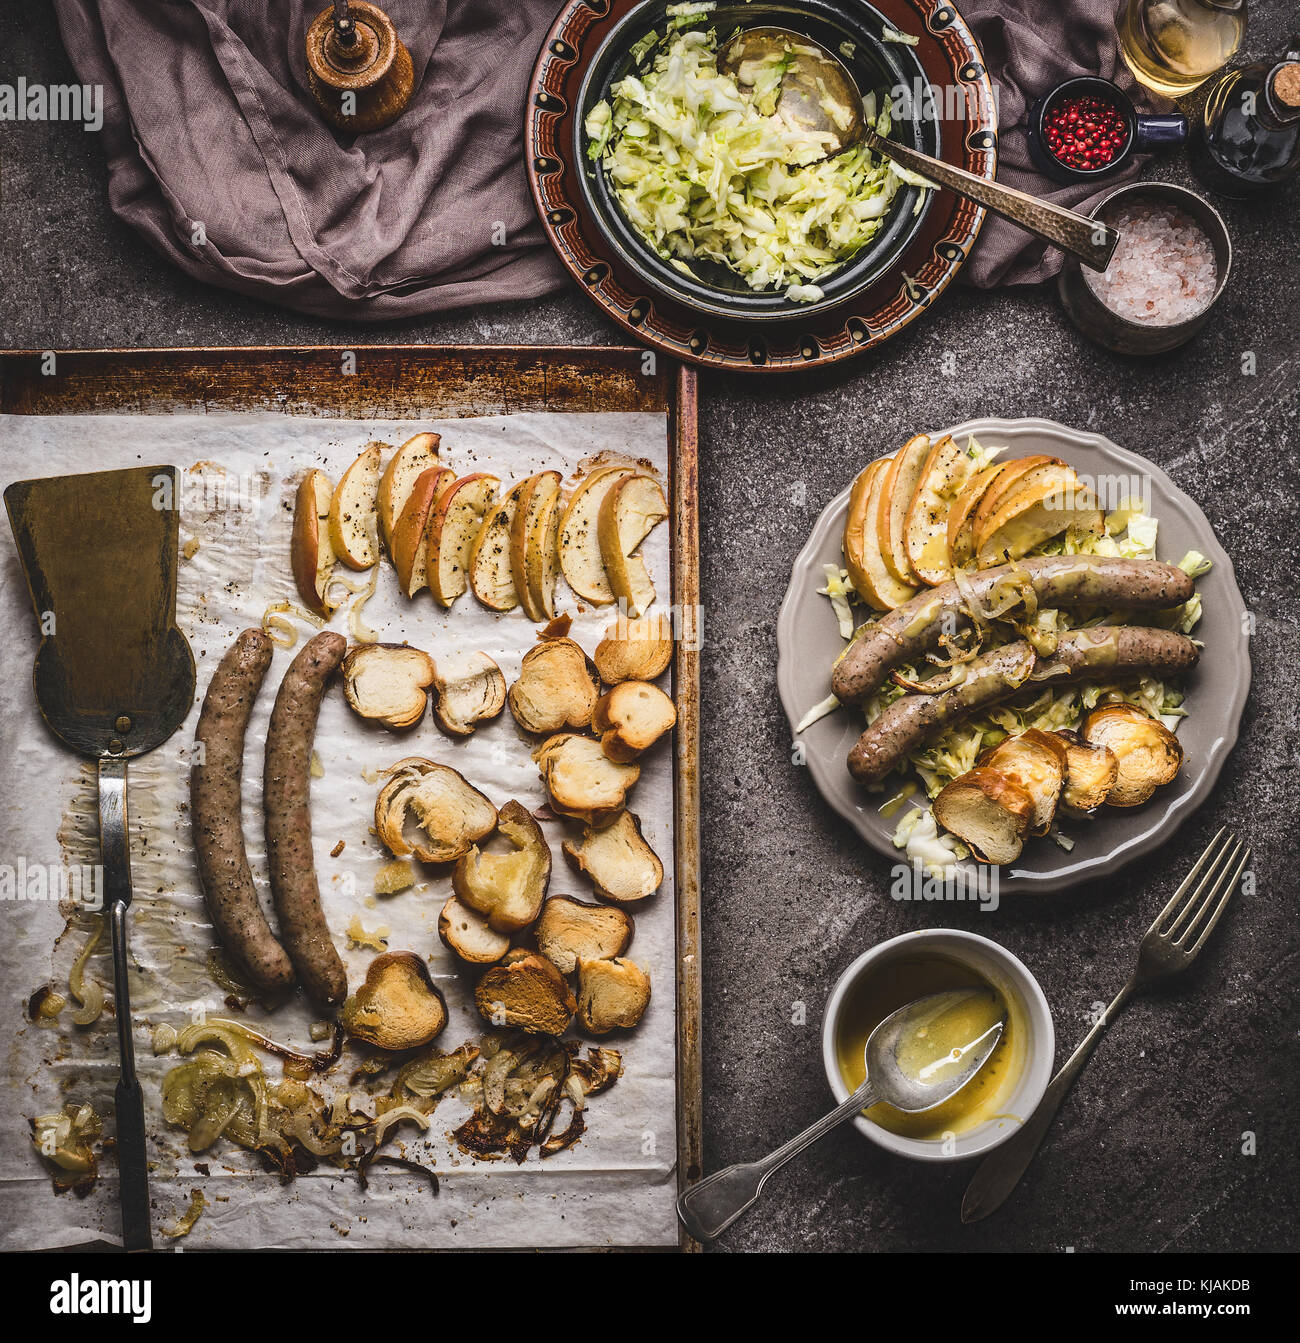 Fried sausages on baking tray served on plate with white coleslaw salad and mustard dip on rustic kitchen table, top view. German food concept. Stock Photo